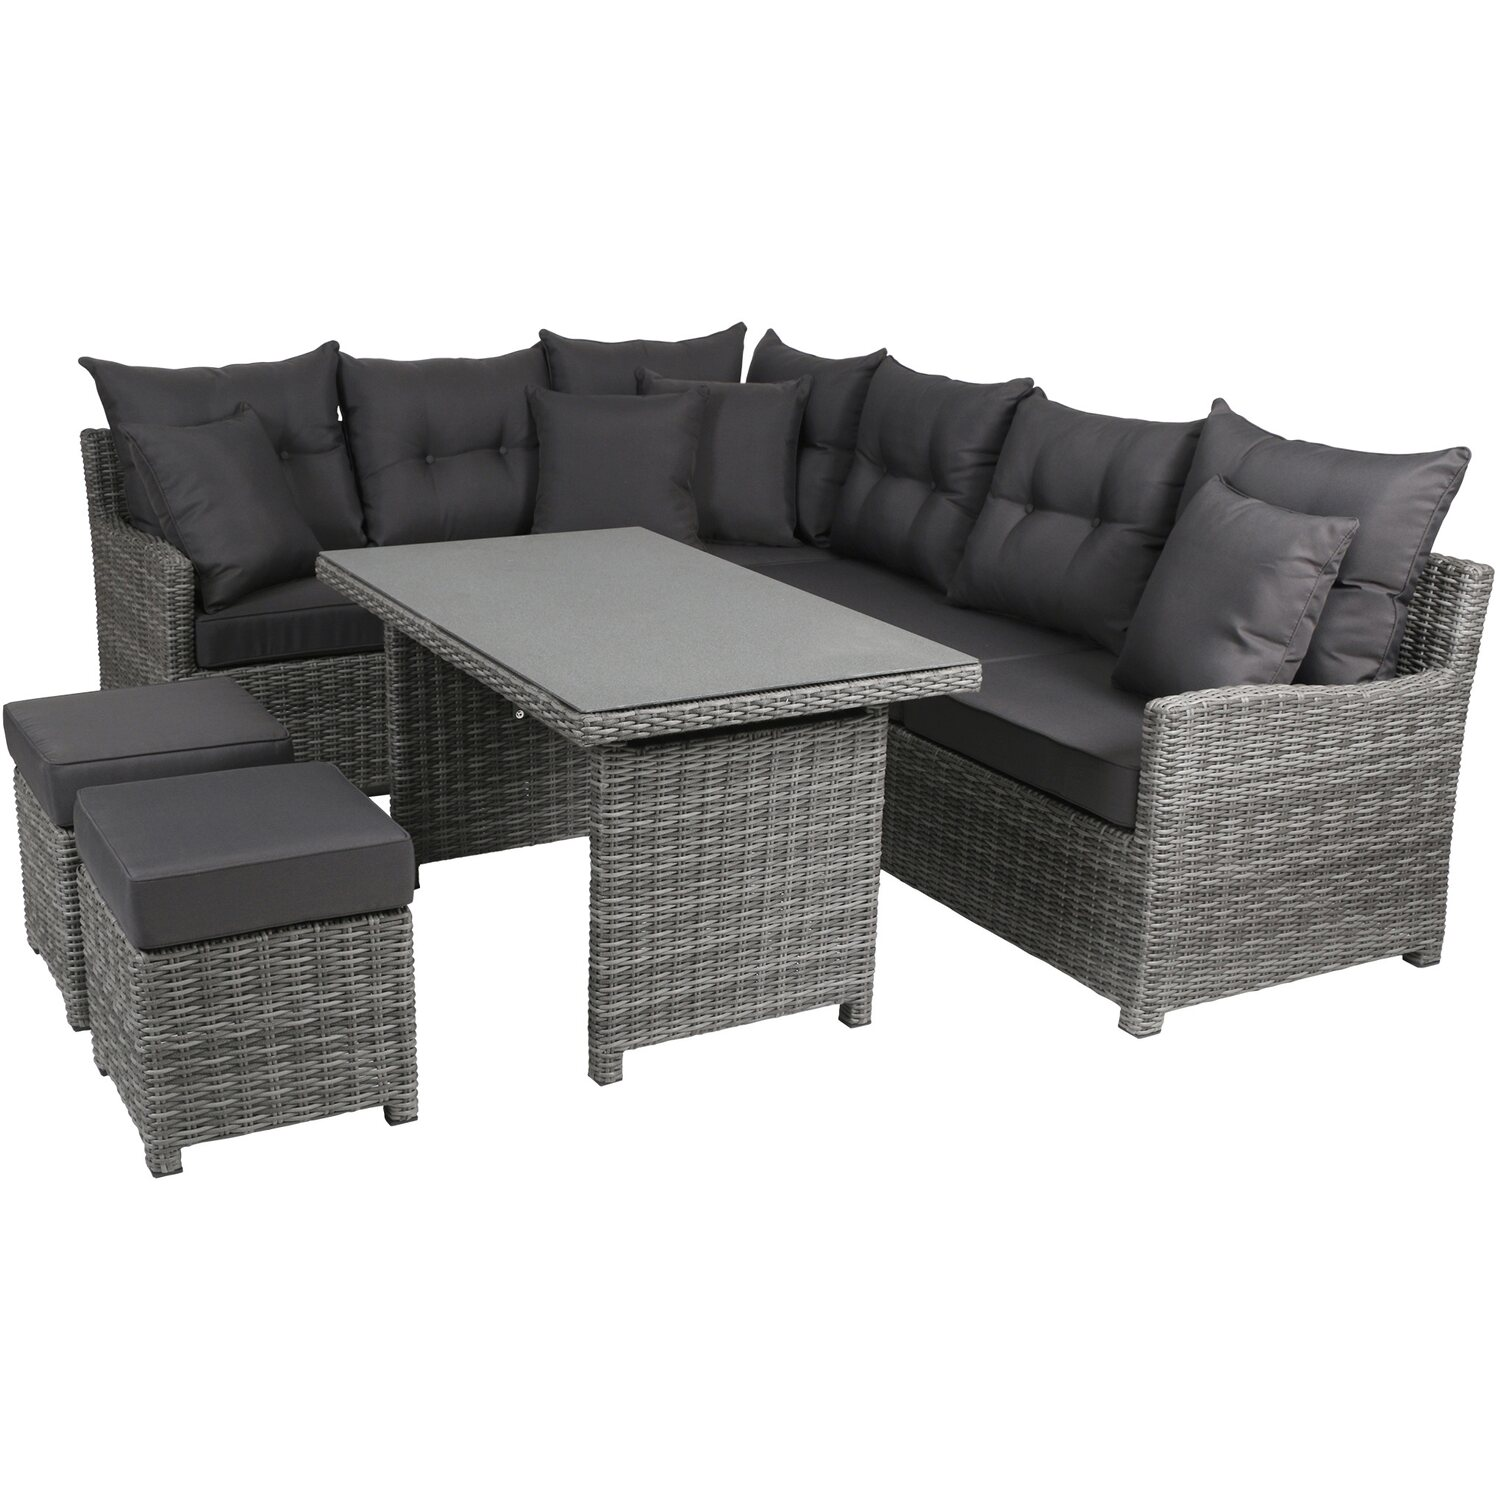 greemotion lounge gruppe miami comfort kaufen bei obi. Black Bedroom Furniture Sets. Home Design Ideas